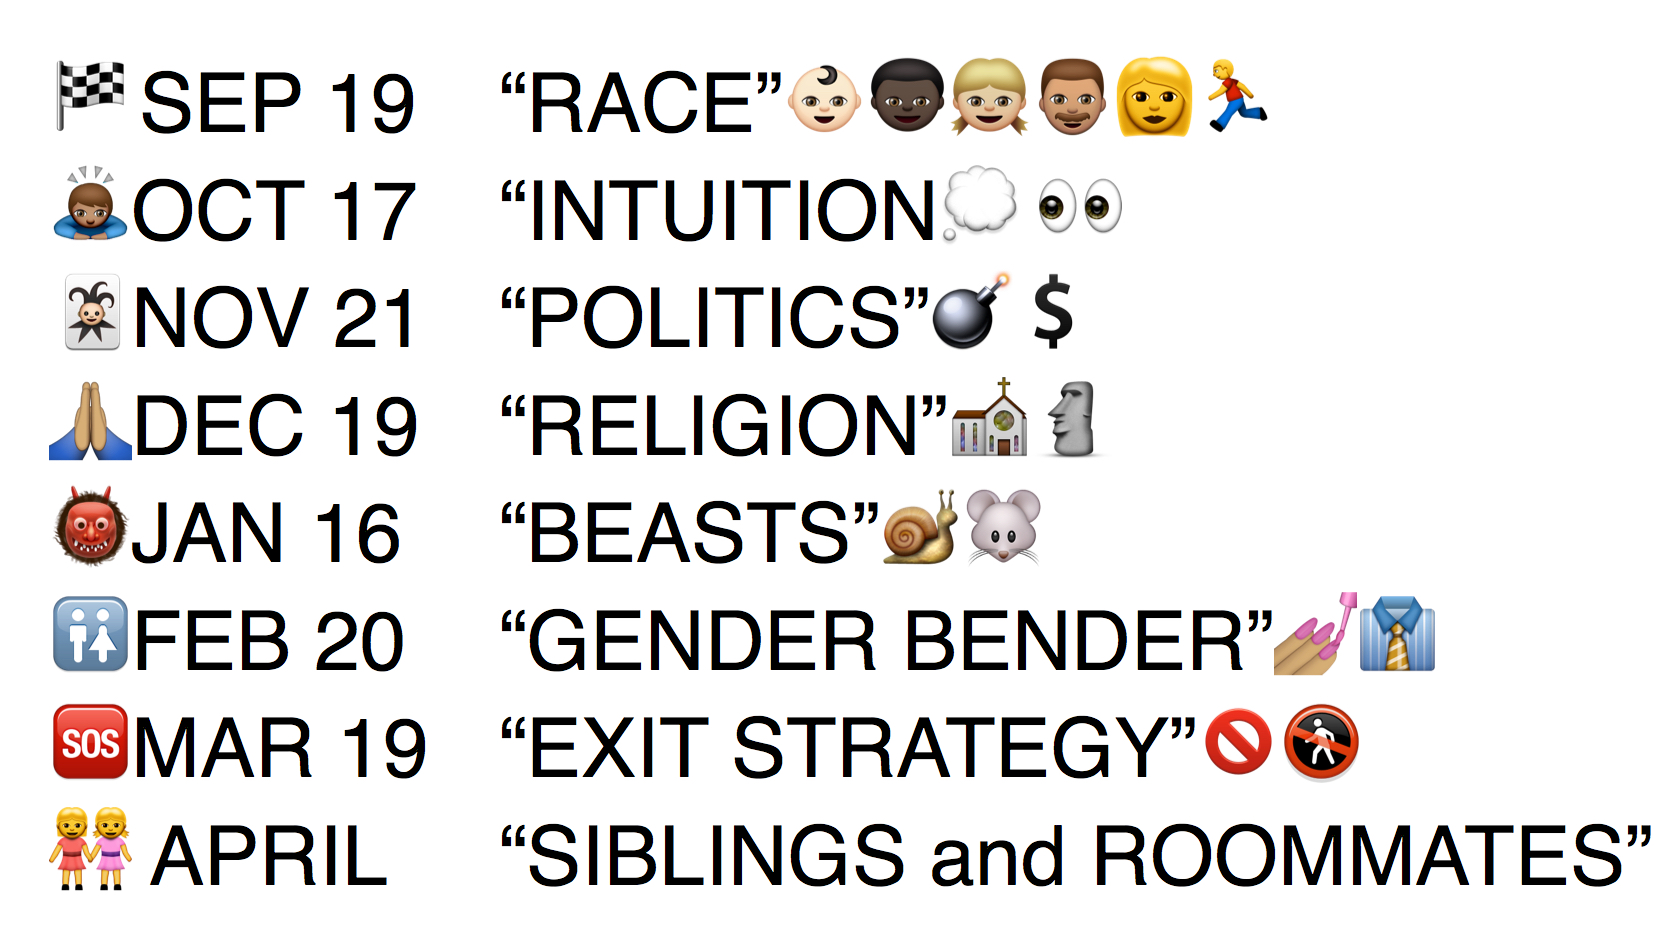 List of themes for the upcoming season 2015-16